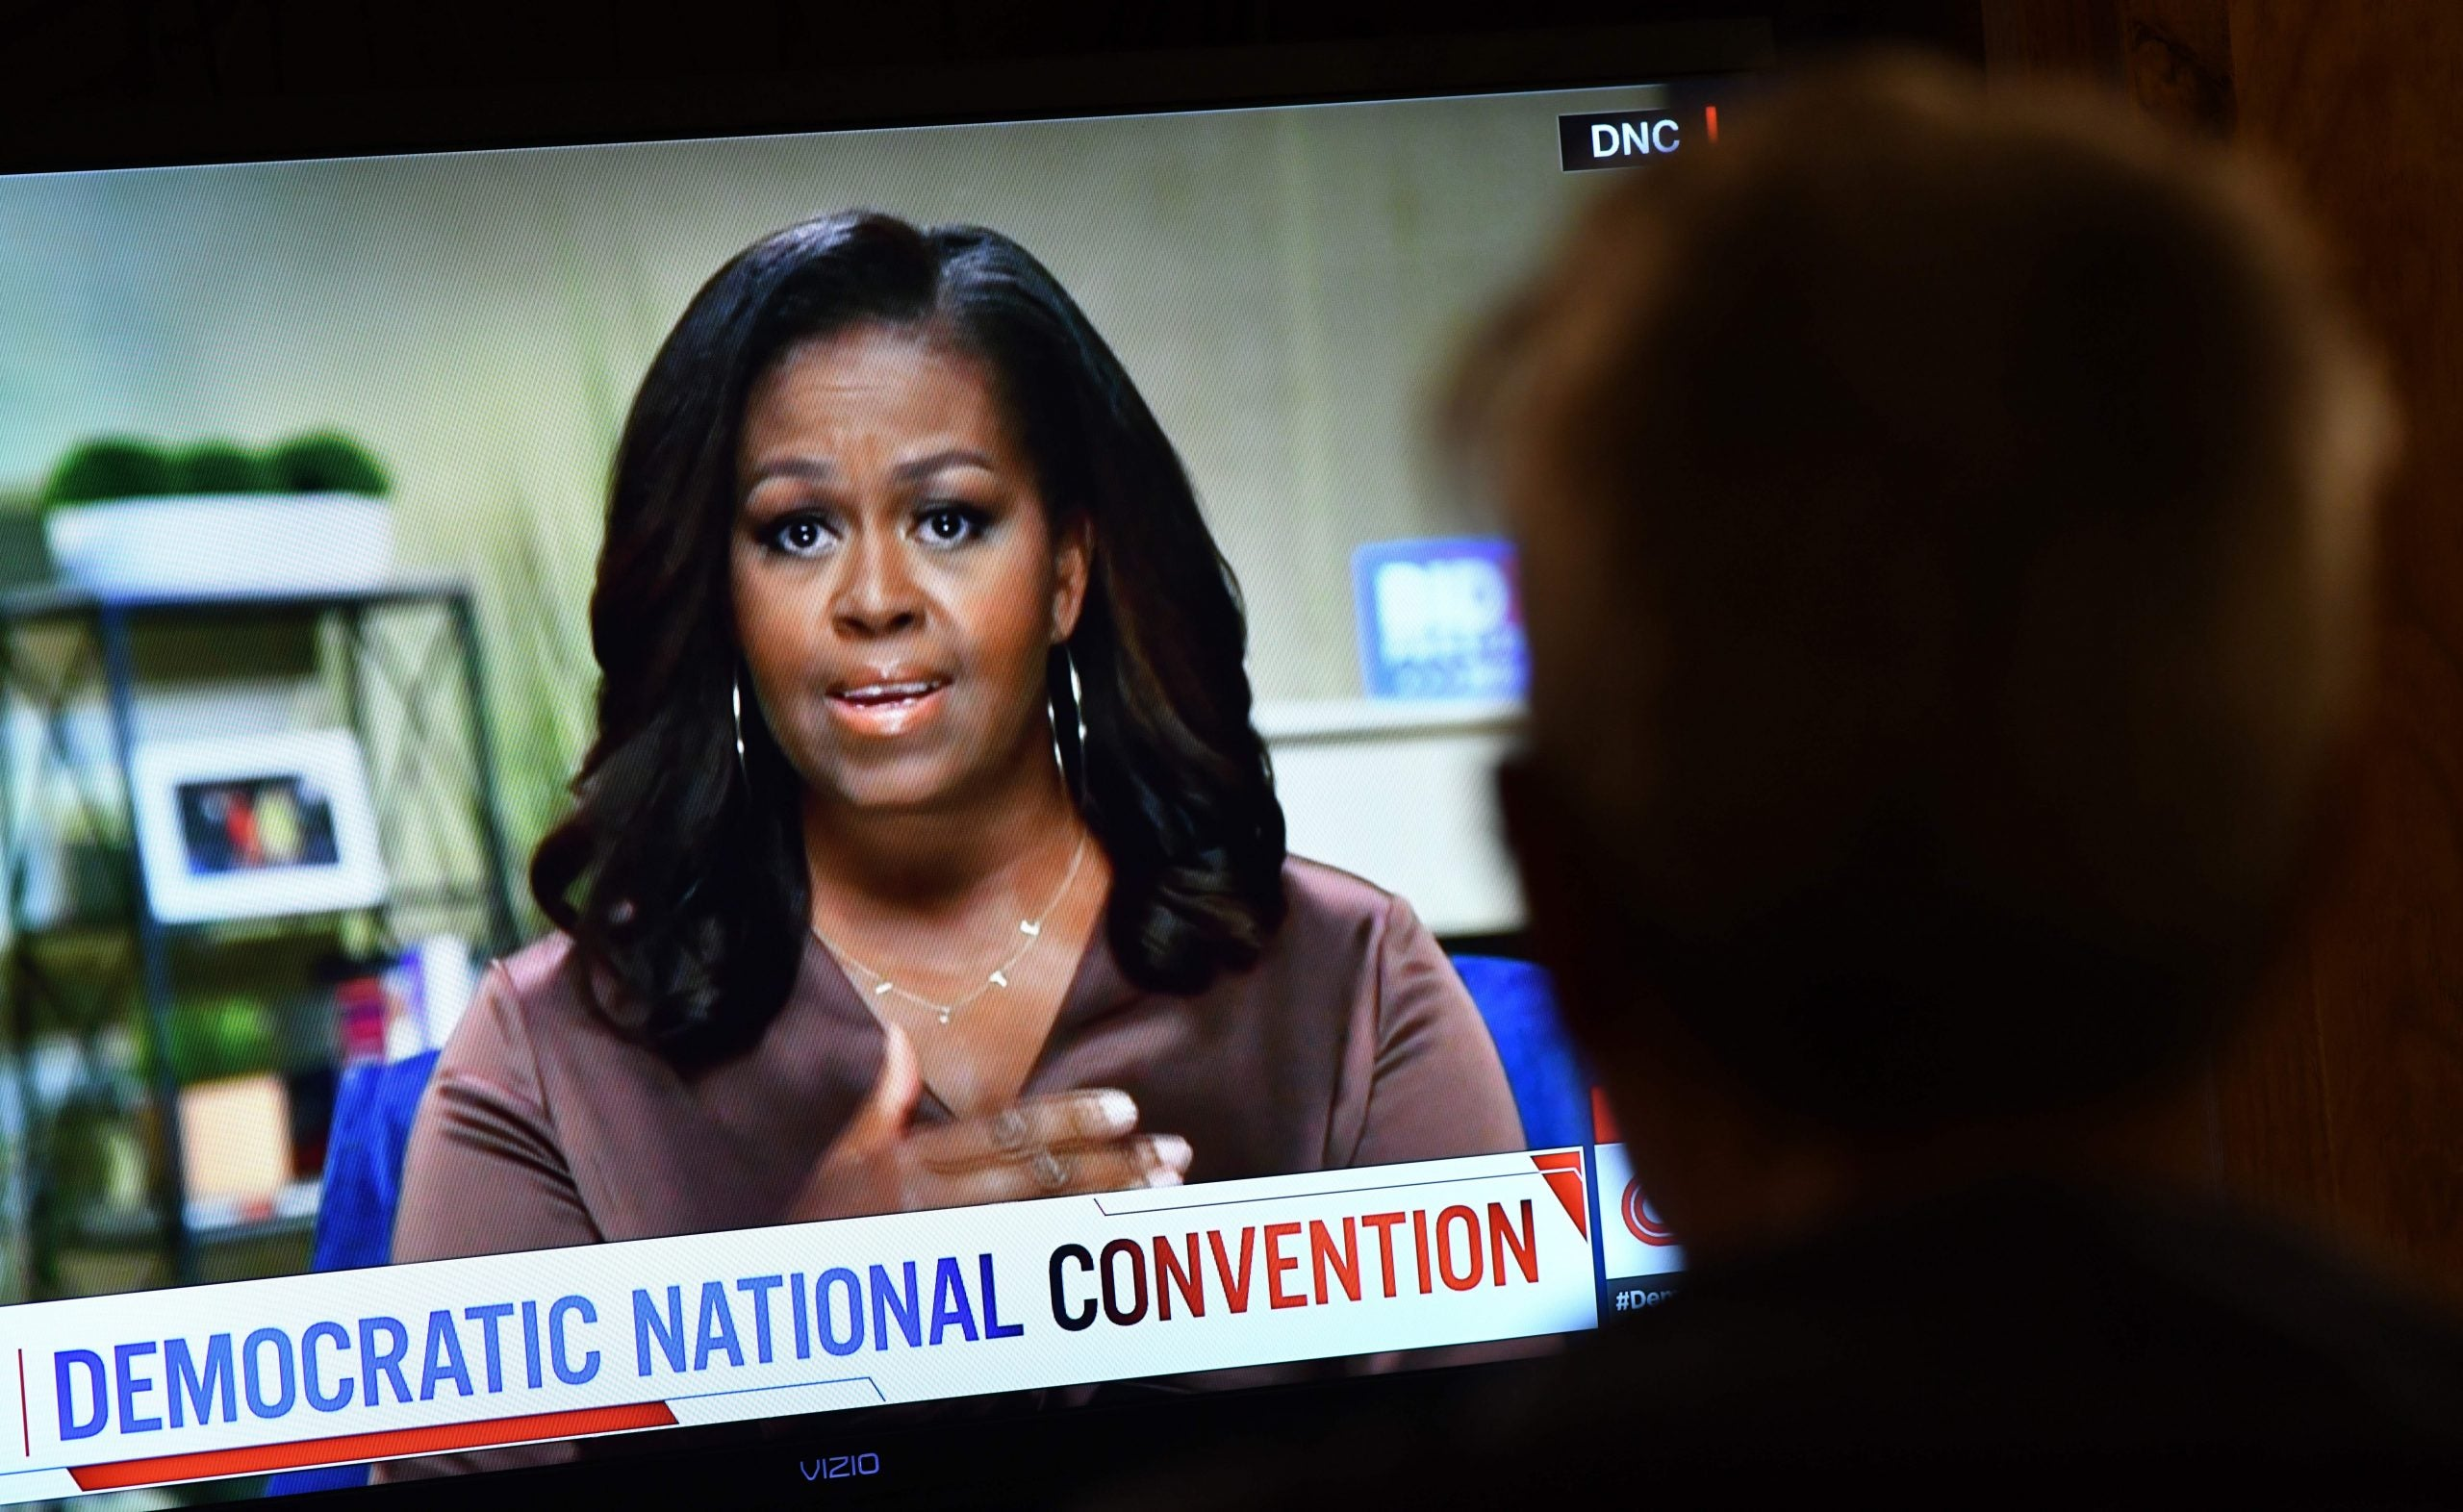 A person watches former First Lady Michelle Obama speak during the opening night of the Democratic National Convention, being held virtually amid the novel coronavirus pandemic, in Los Angeles, on August 17, 2020. - (Photo by CHRIS DELMAS/AFP via Getty Images)